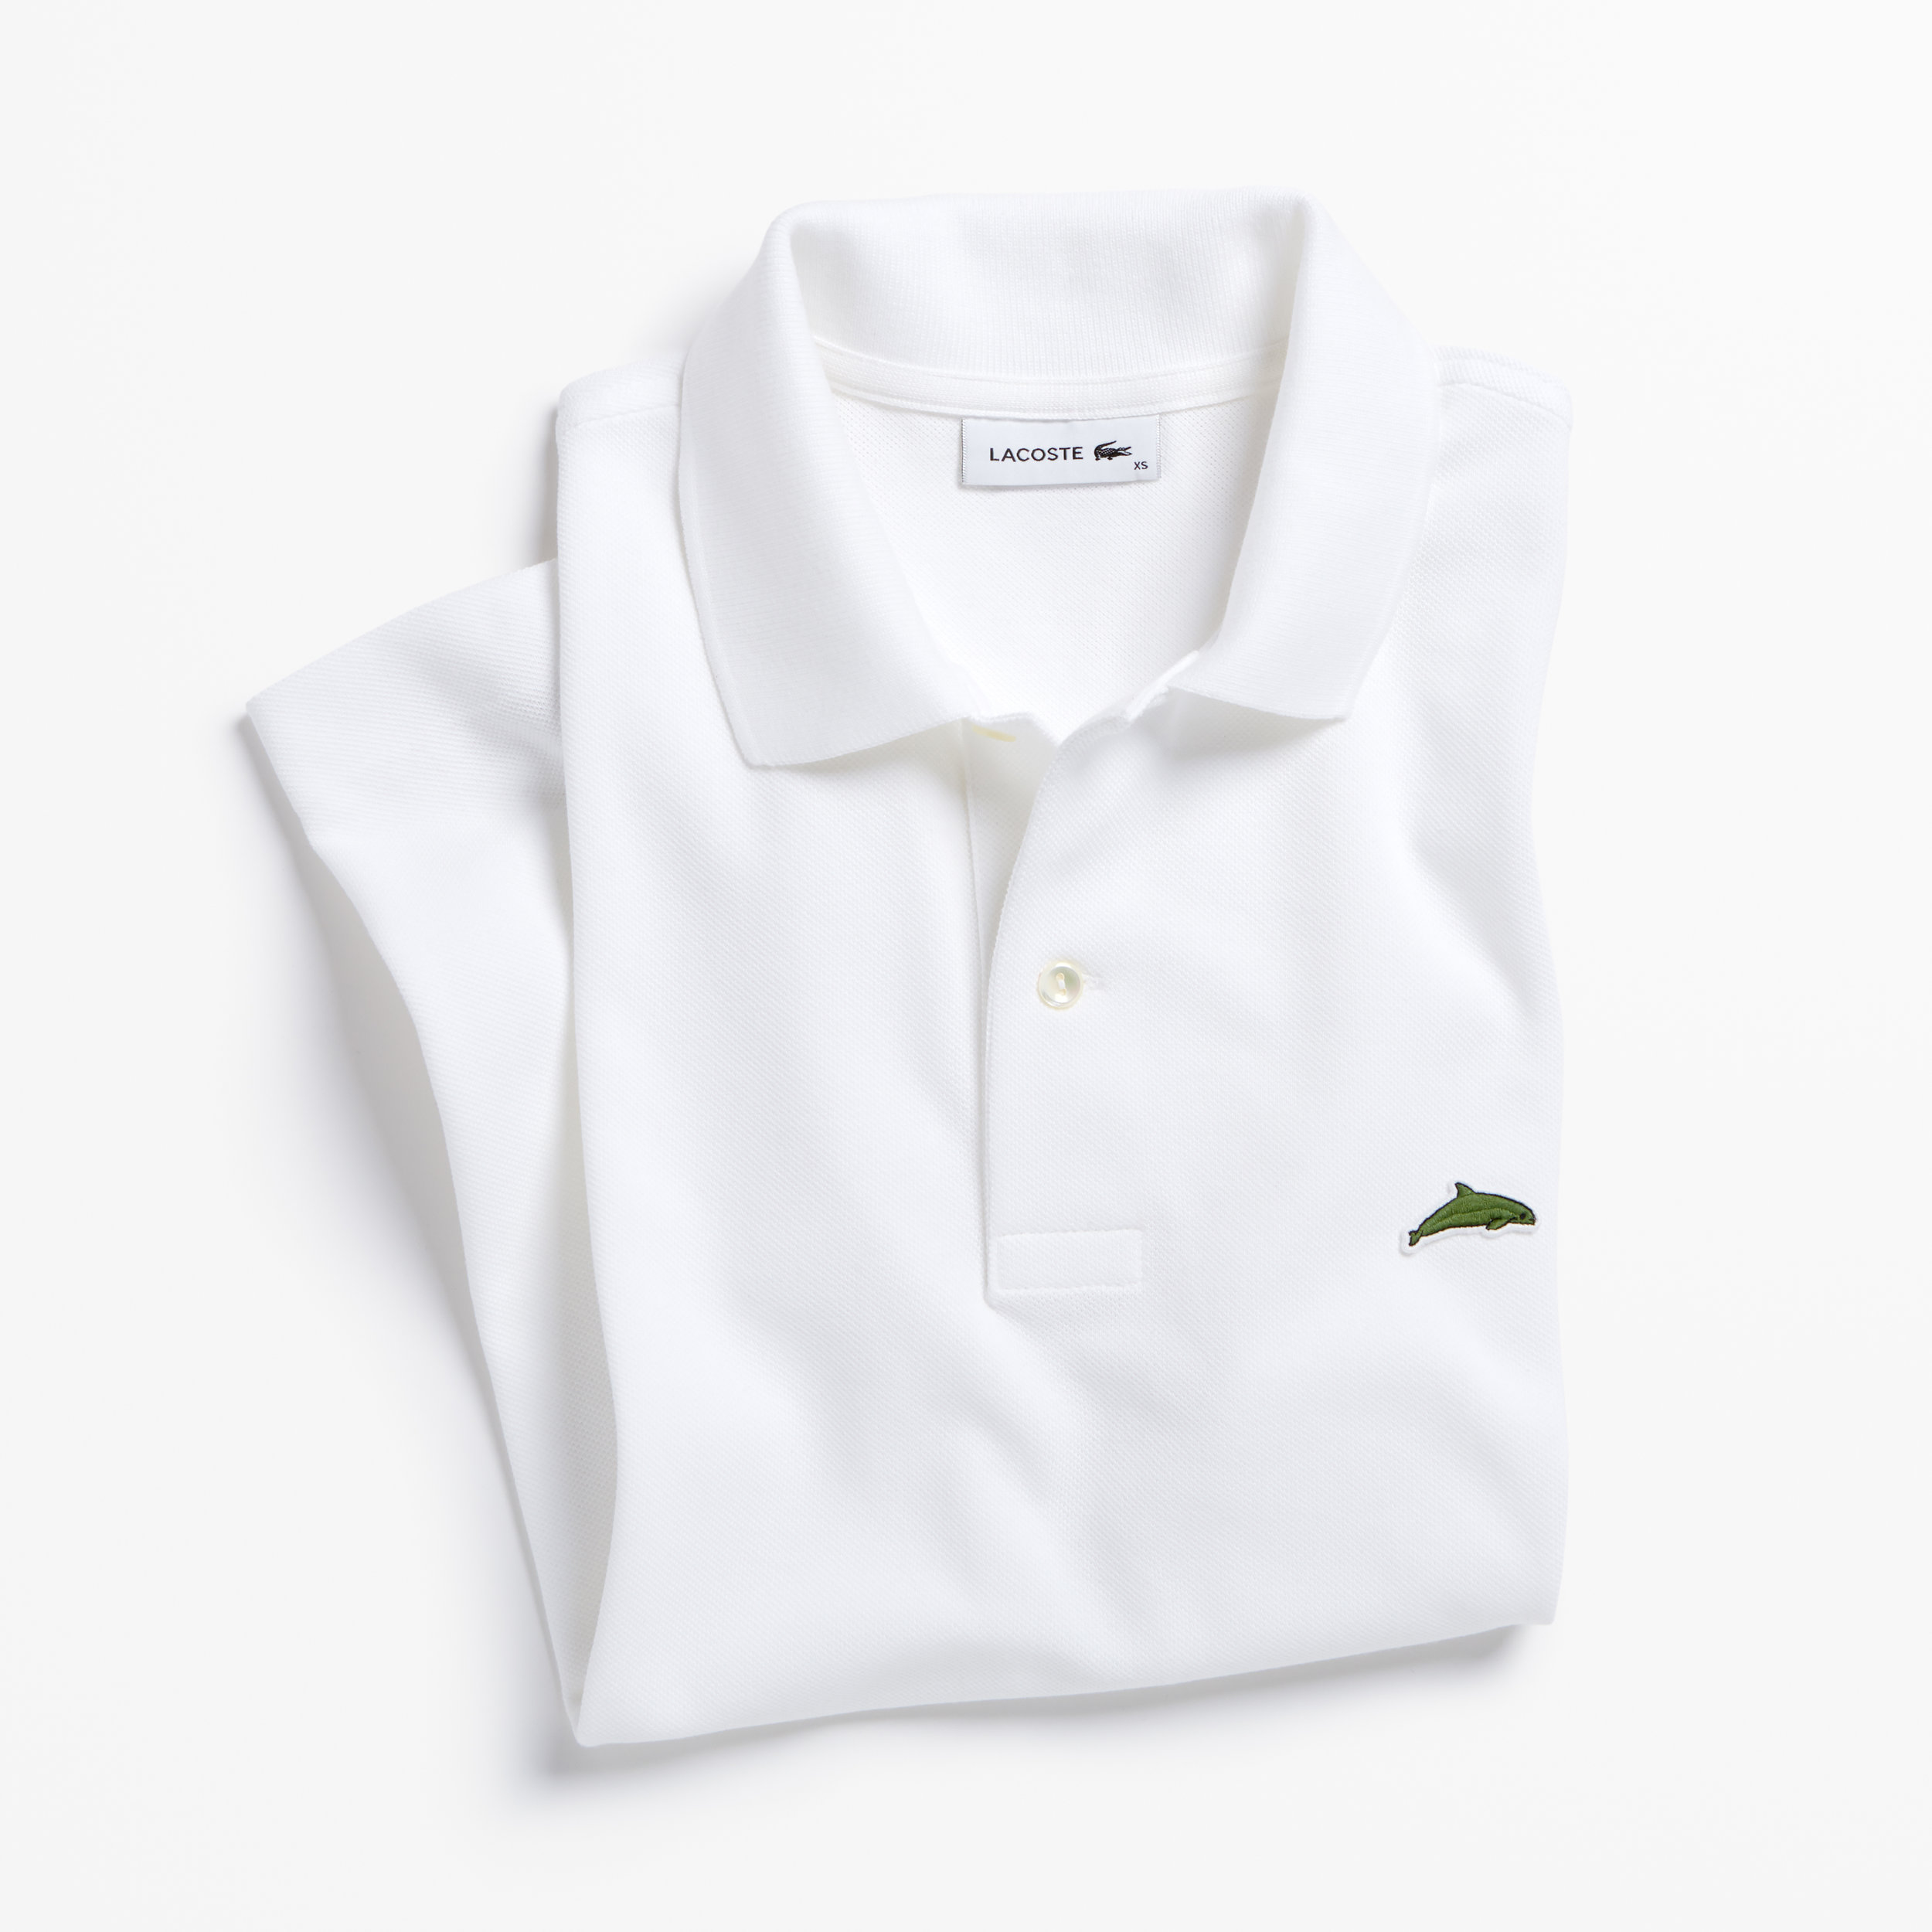 01. LACOSTE X SAVE OUR SPECIES (UICN)_THE VAQUITA_PH4659.jpg